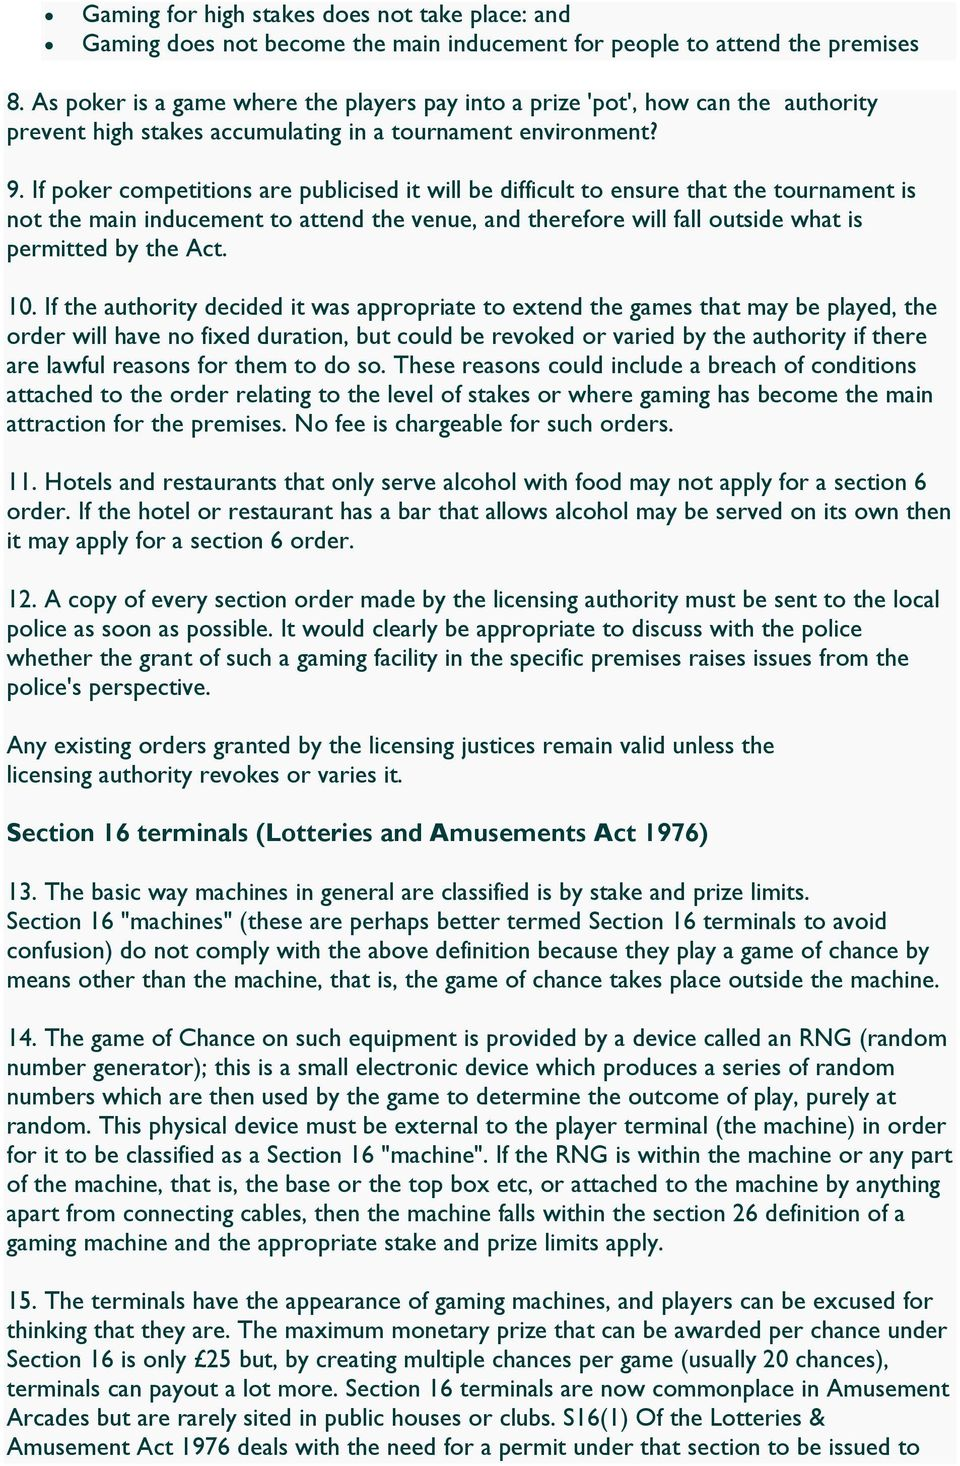 If poker competitions are publicised it will be difficult to ensure that the tournament is not the main inducement to attend the venue, and therefore will fall outside what is permitted by the Act.